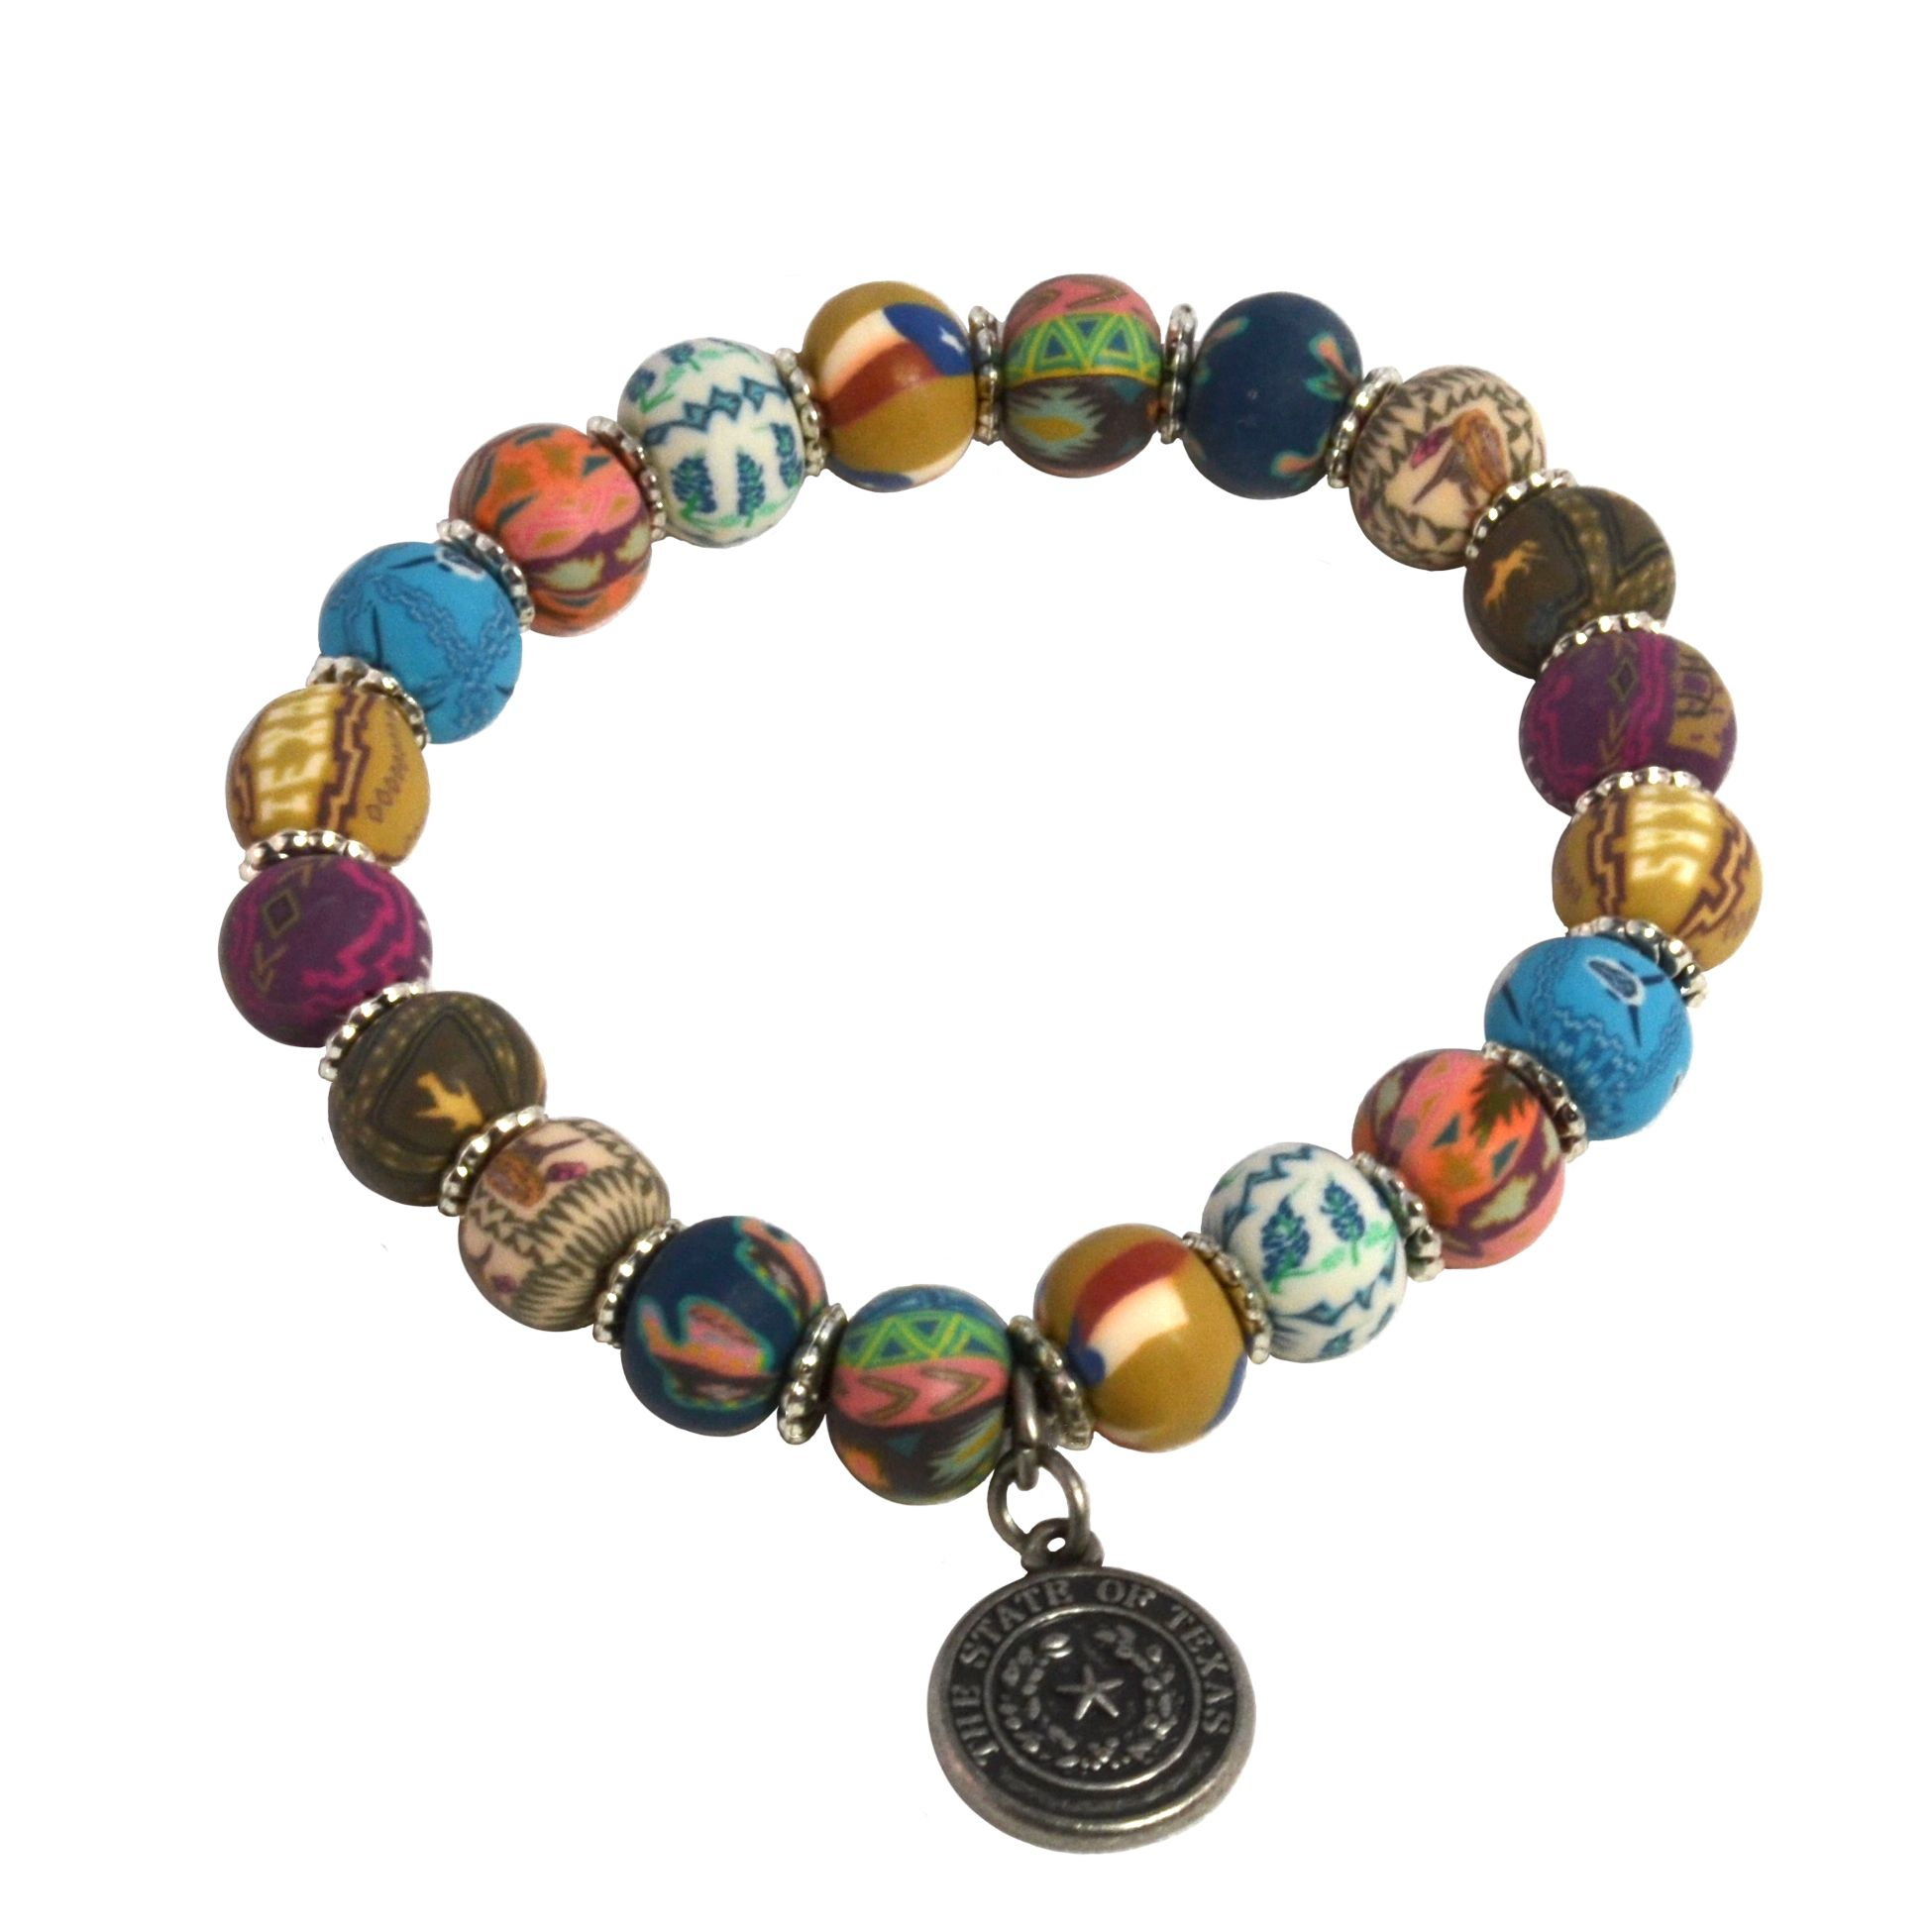 Texas State Seal Clay Bead Bracelet